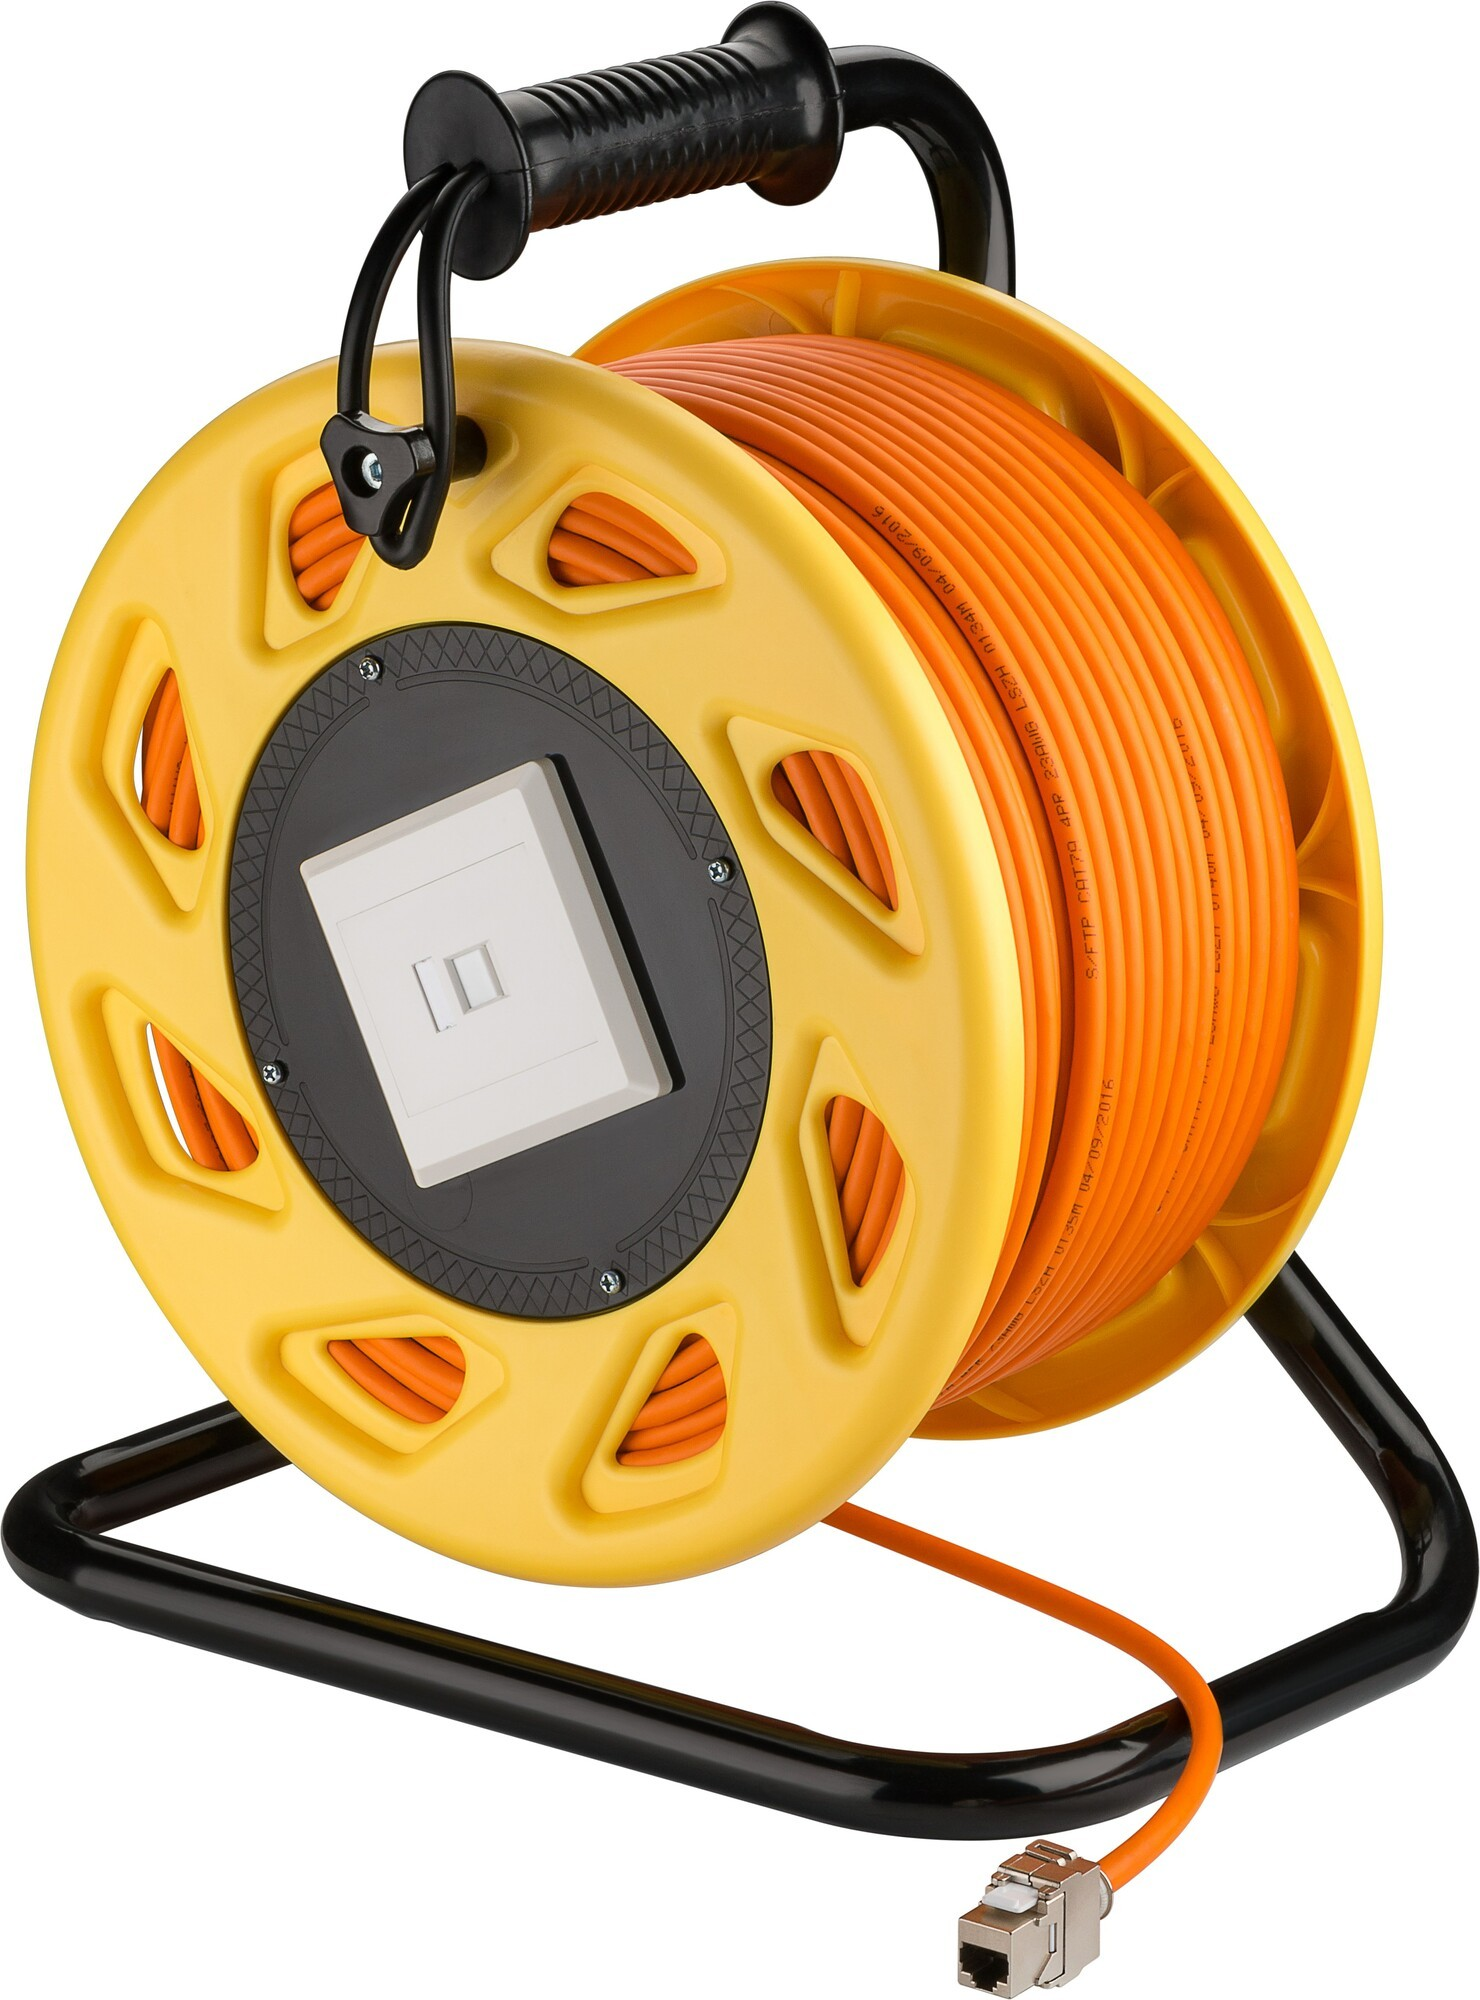 Afbeelding van CAT7 S/FTP cable reel with CAT6a keystone connector - RJ45 - 90 m